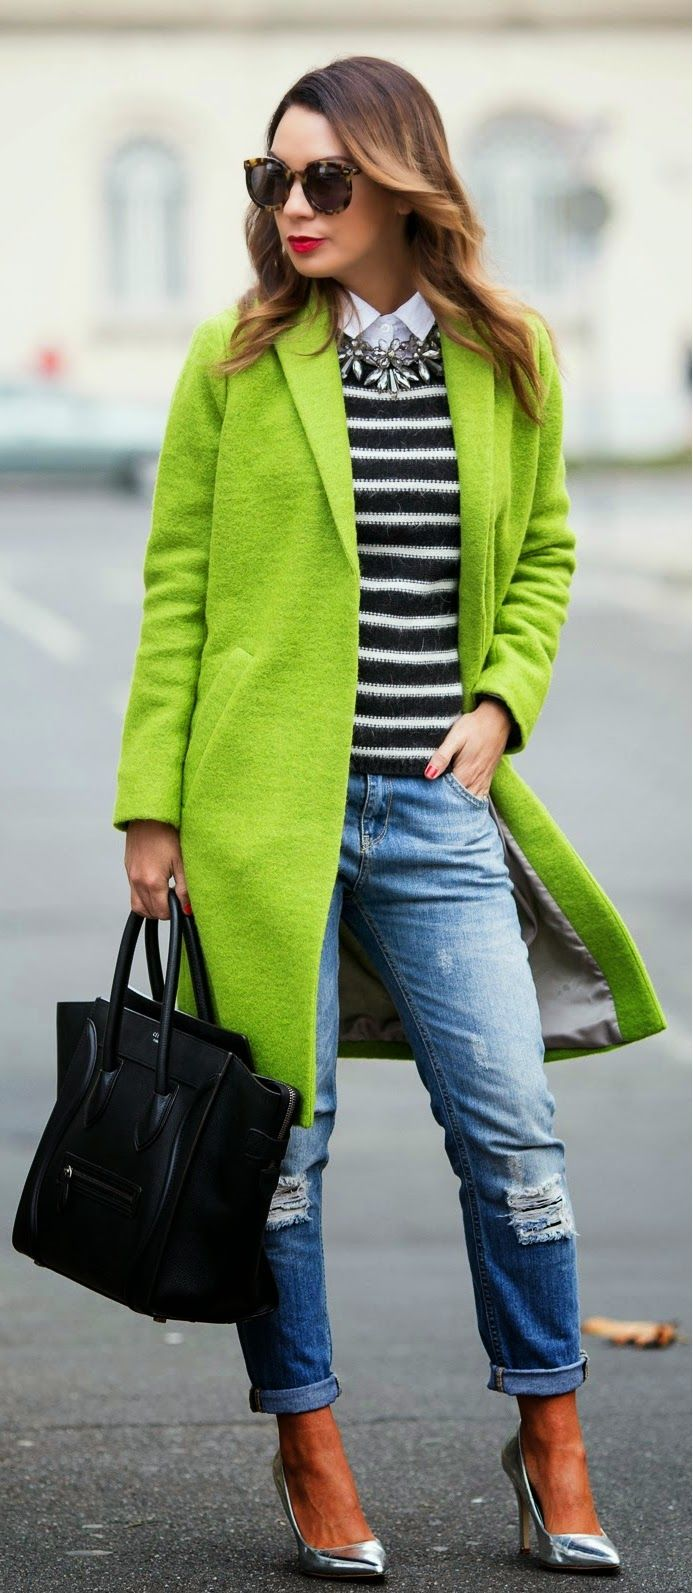 Causal Lime Green Coat + Comfy Stripes & Ripped